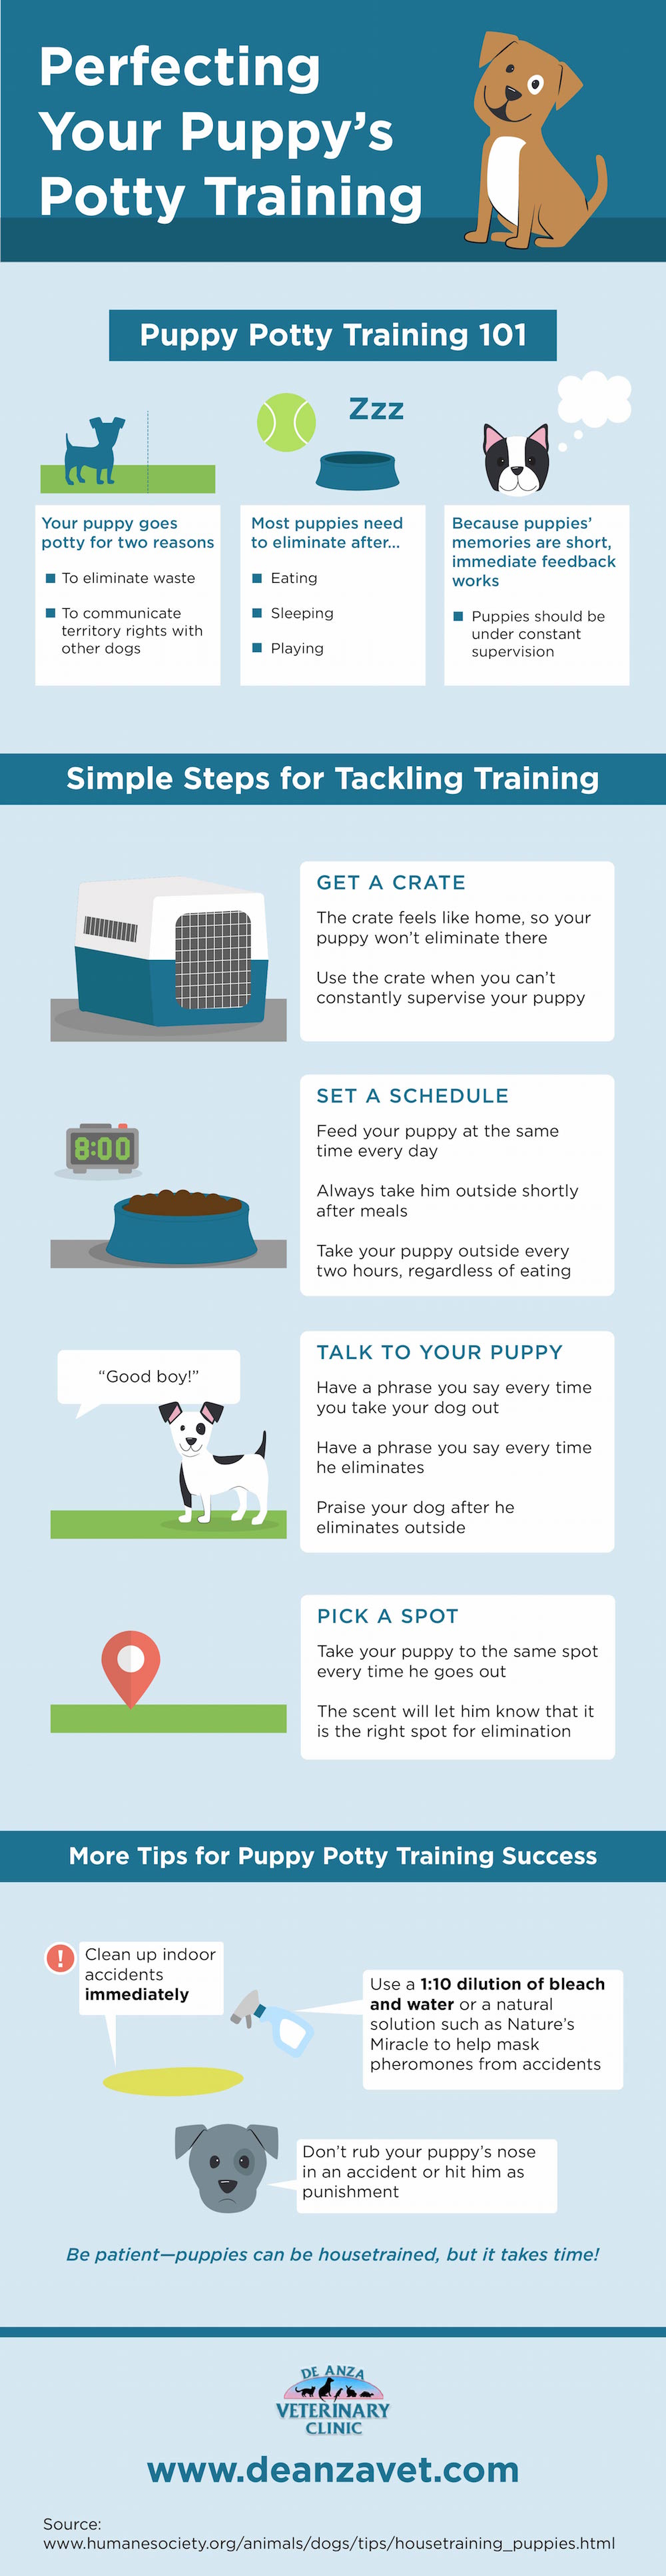 perfecting-your-puppys-potty-training_55d74ccc0b579.jpg